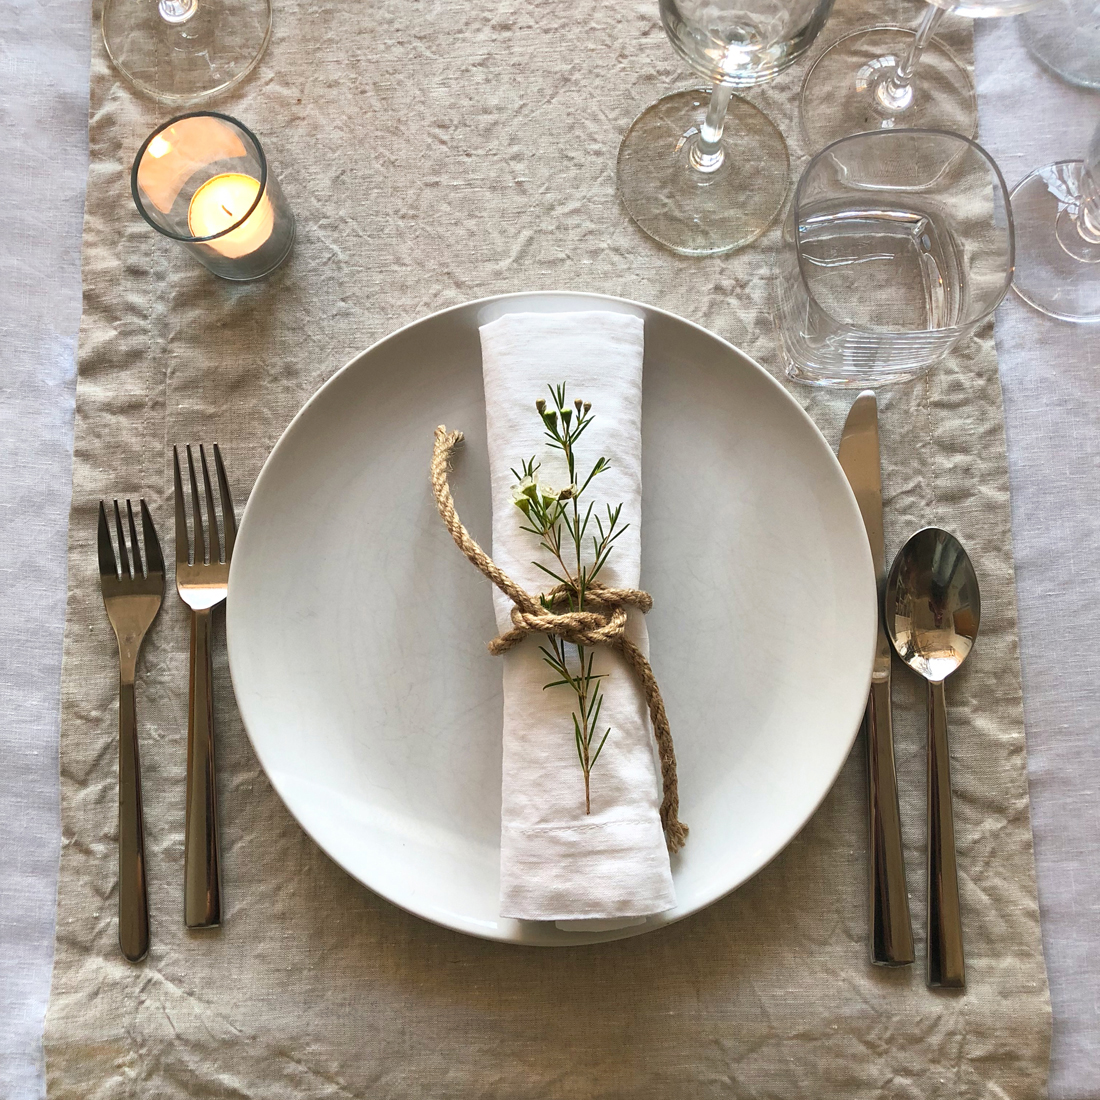 huddleson linens natural flax linen table runner white napkin swedish dinner party artistic accents tablecloth scandinavian layering with runners and pier one imports dining room